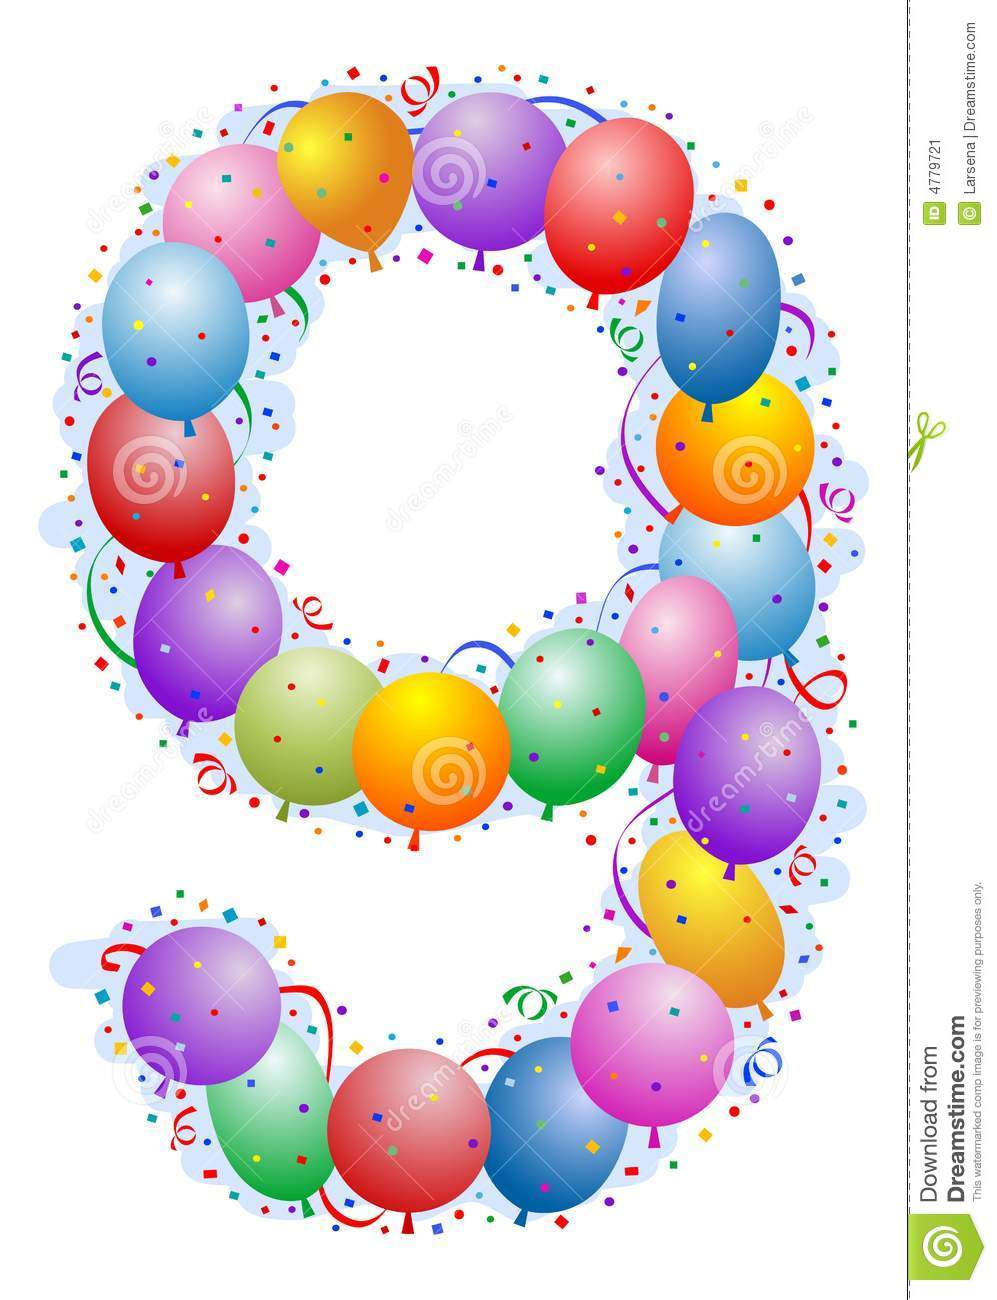 Balloons And Confetti Number 9 Stock Image - Image: 4779721